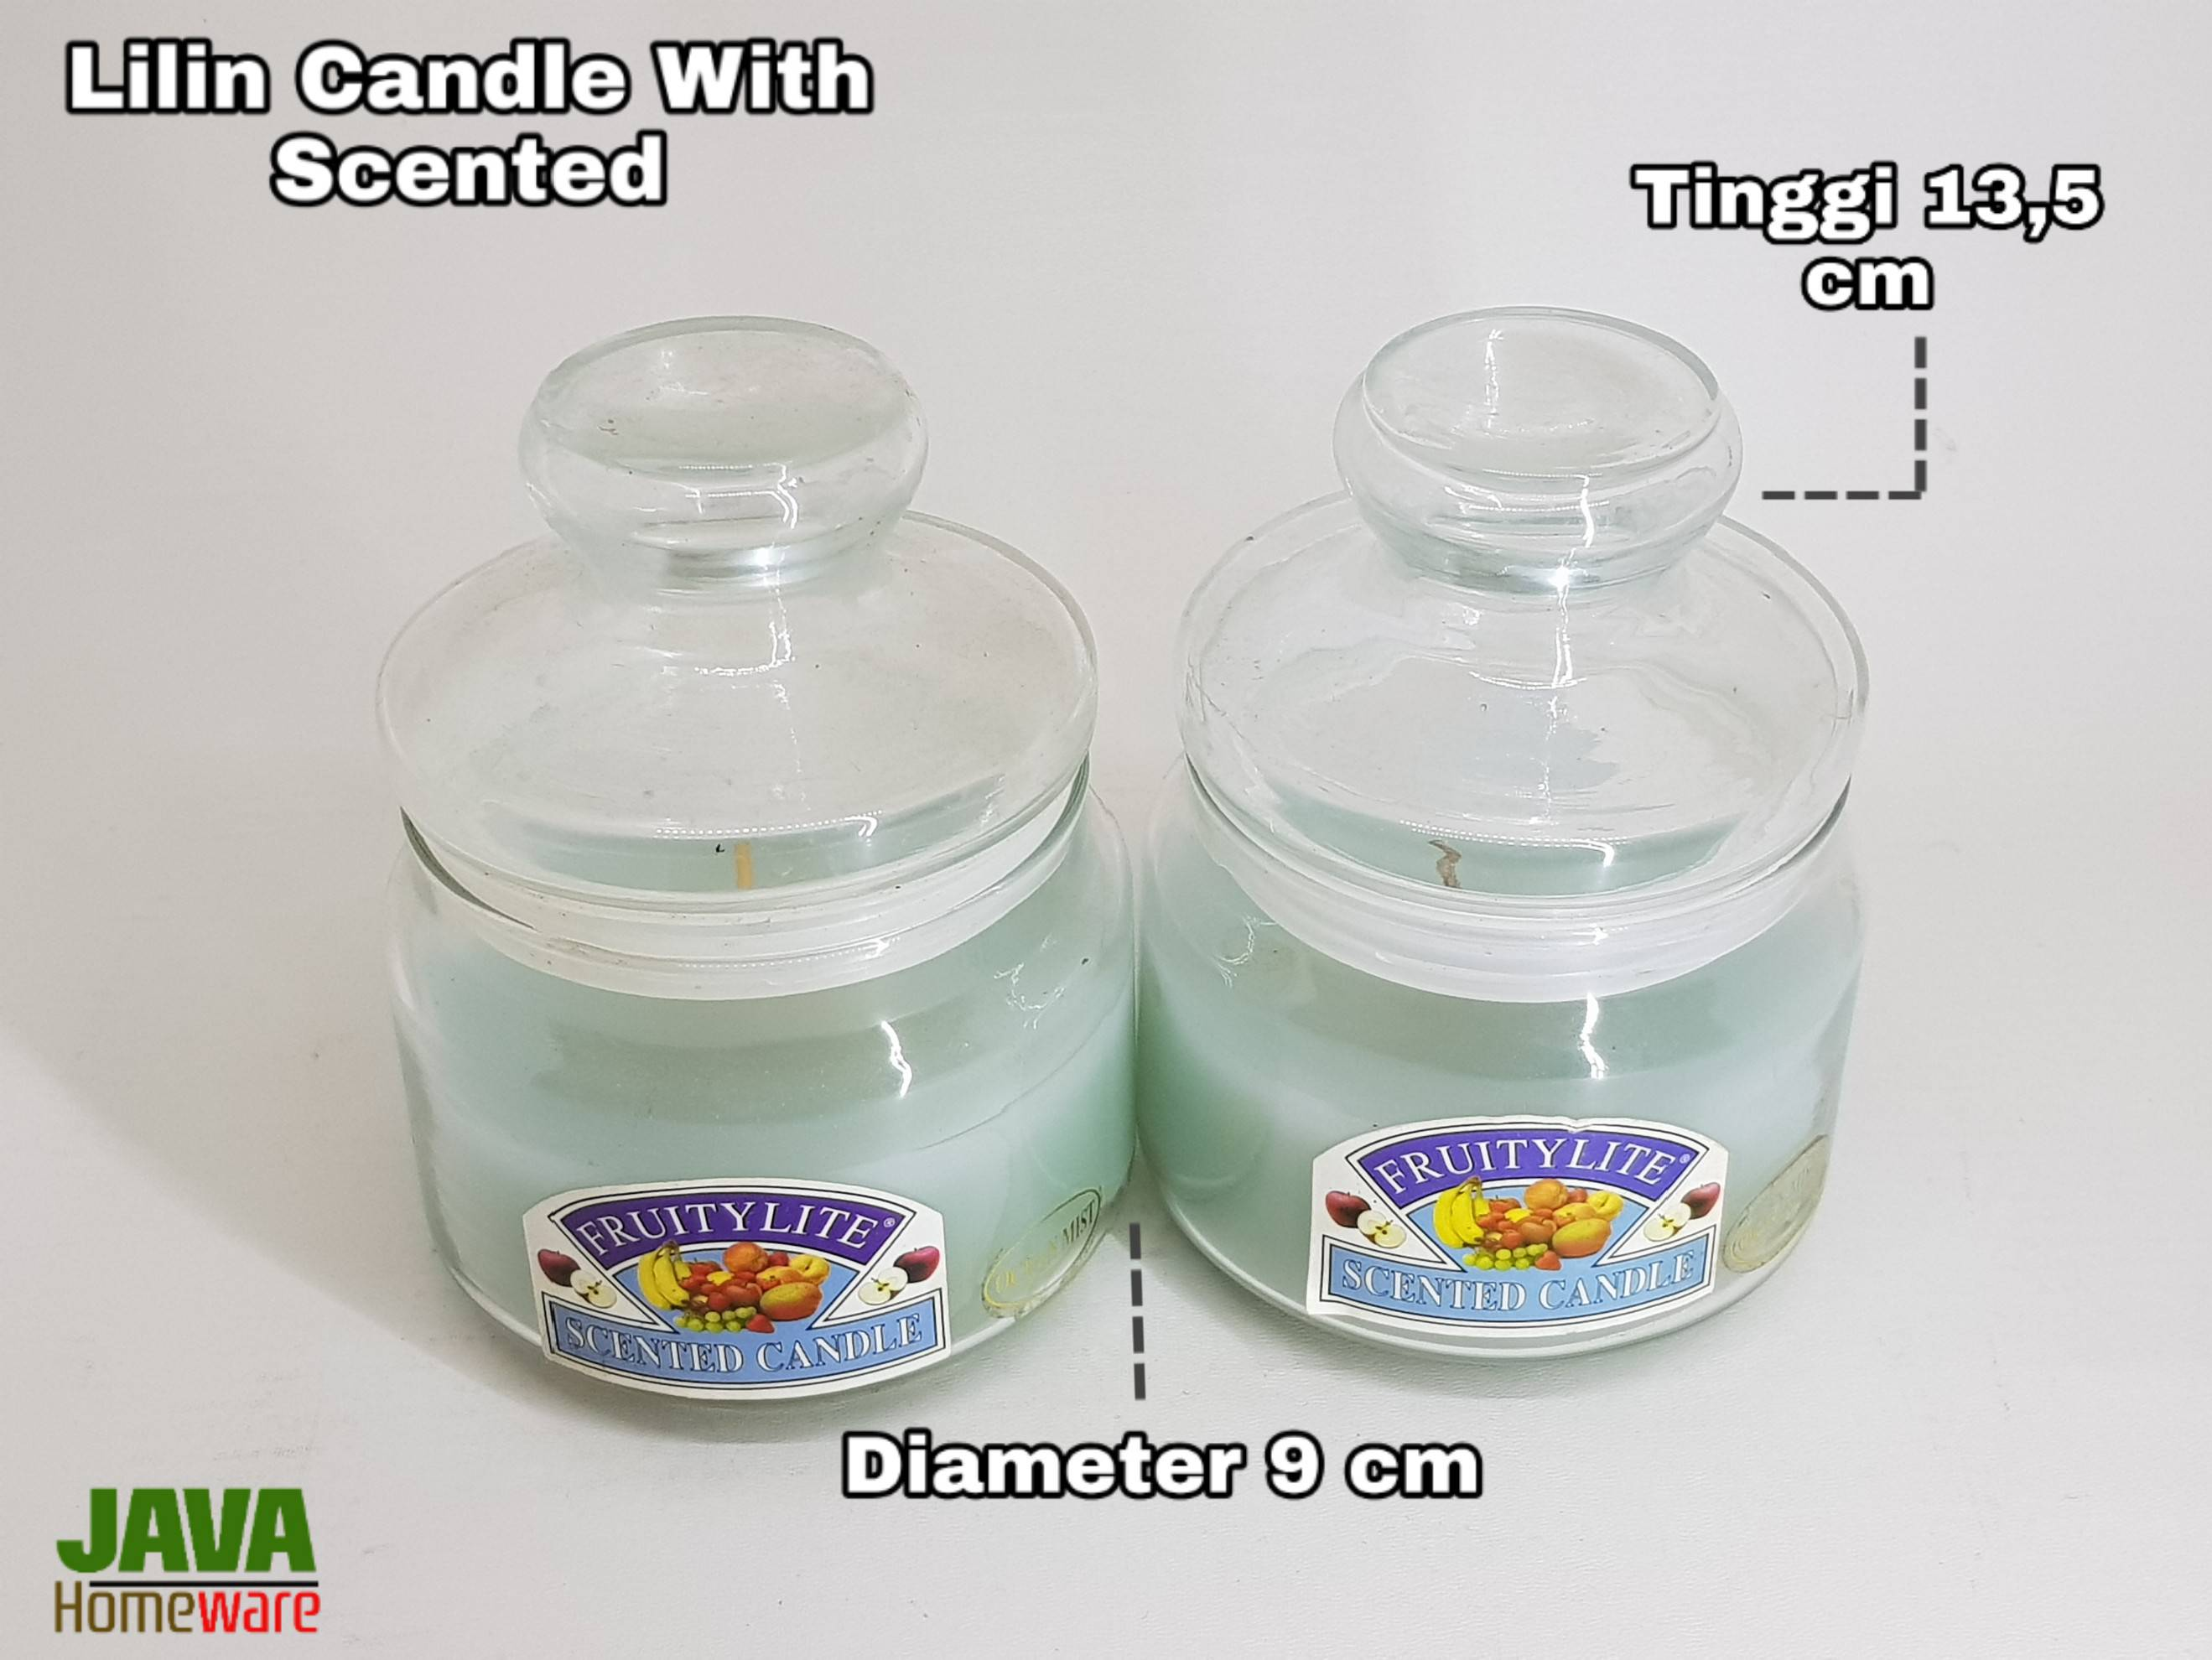 Lilin Candle With Scented With Scented